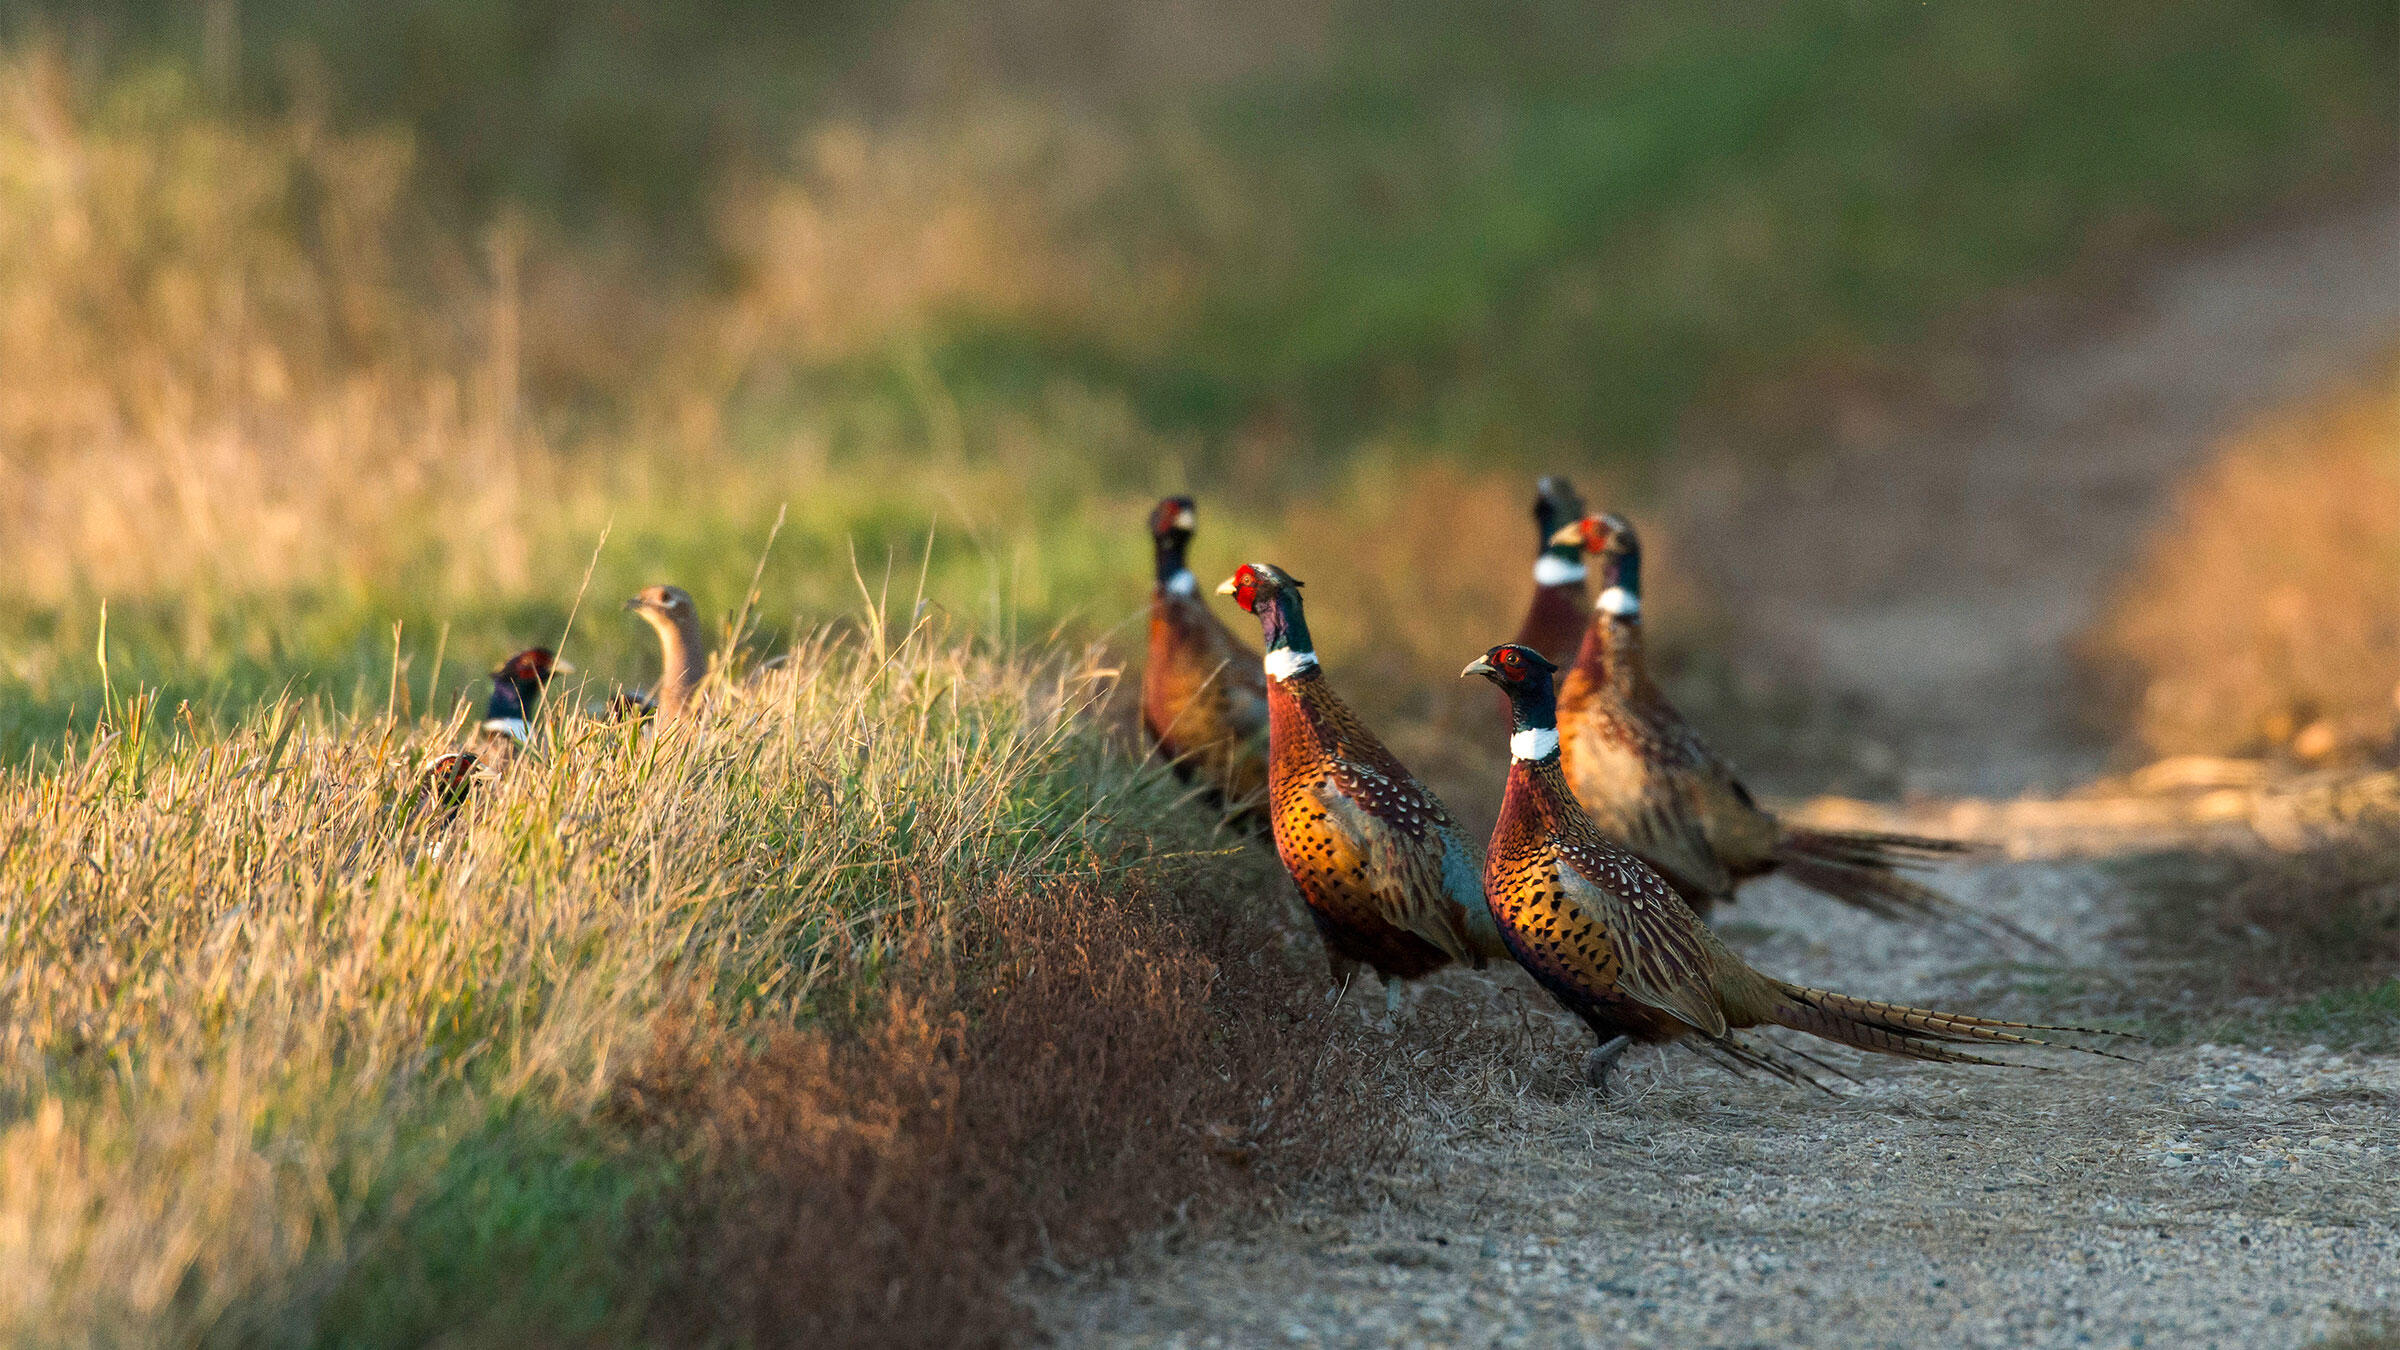 For three consecutive days in April, Wisconsin mail carriers tally the number of Ring-necked Pheasants they spot while making their rounds on rural back roads. Steve Oehlenschlager/Alamy